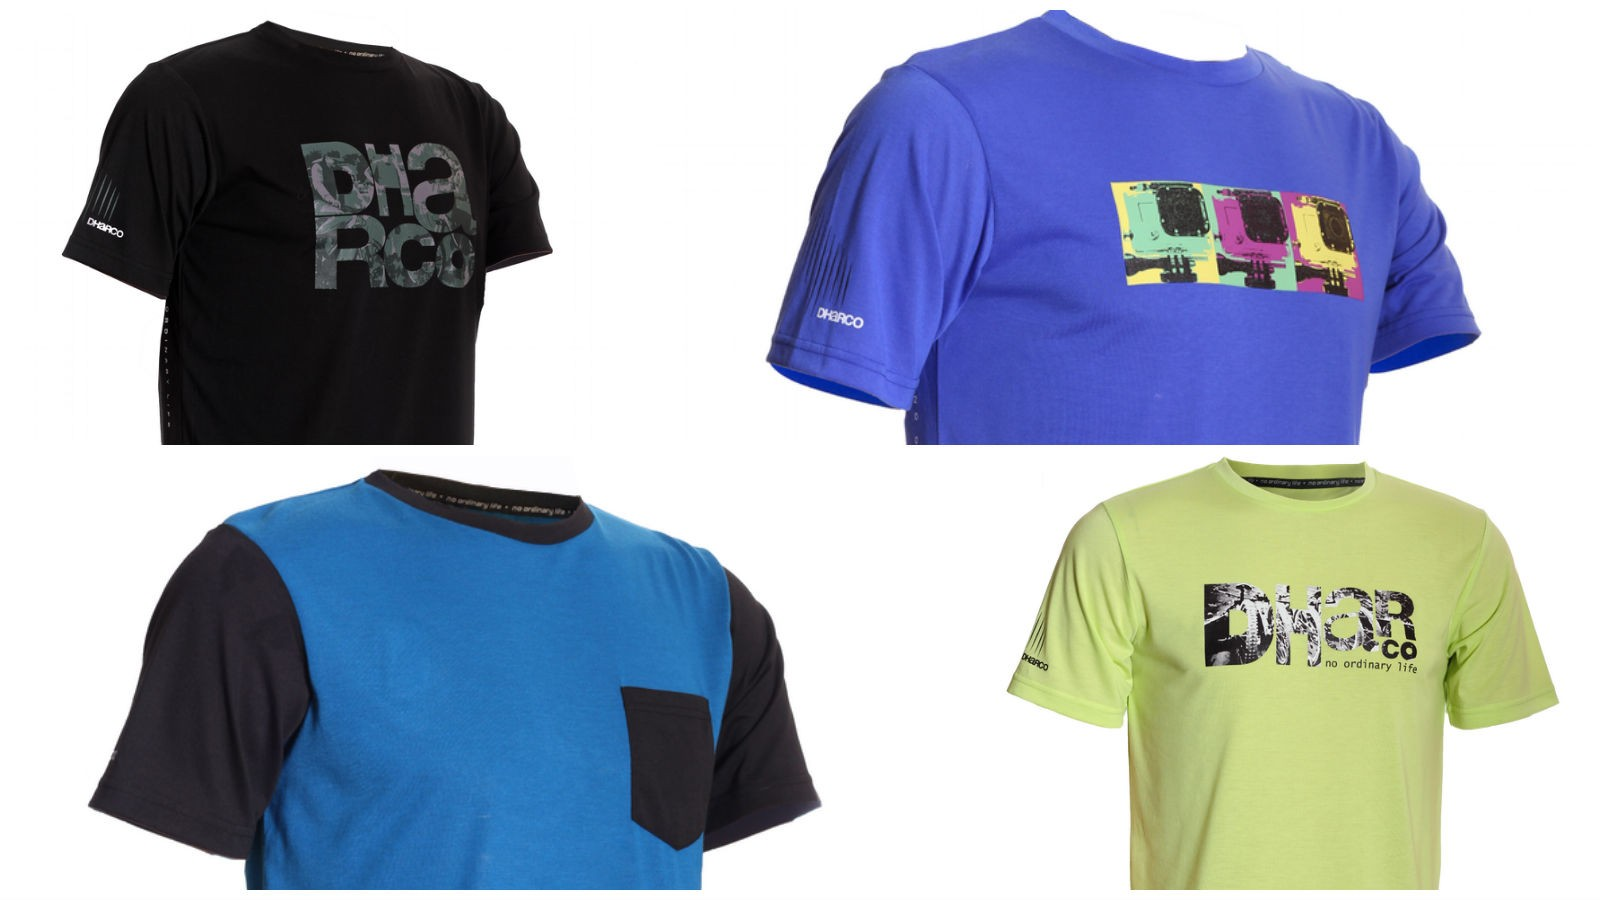 Dharco's tech tees are something we would wear on the trail and to the shops